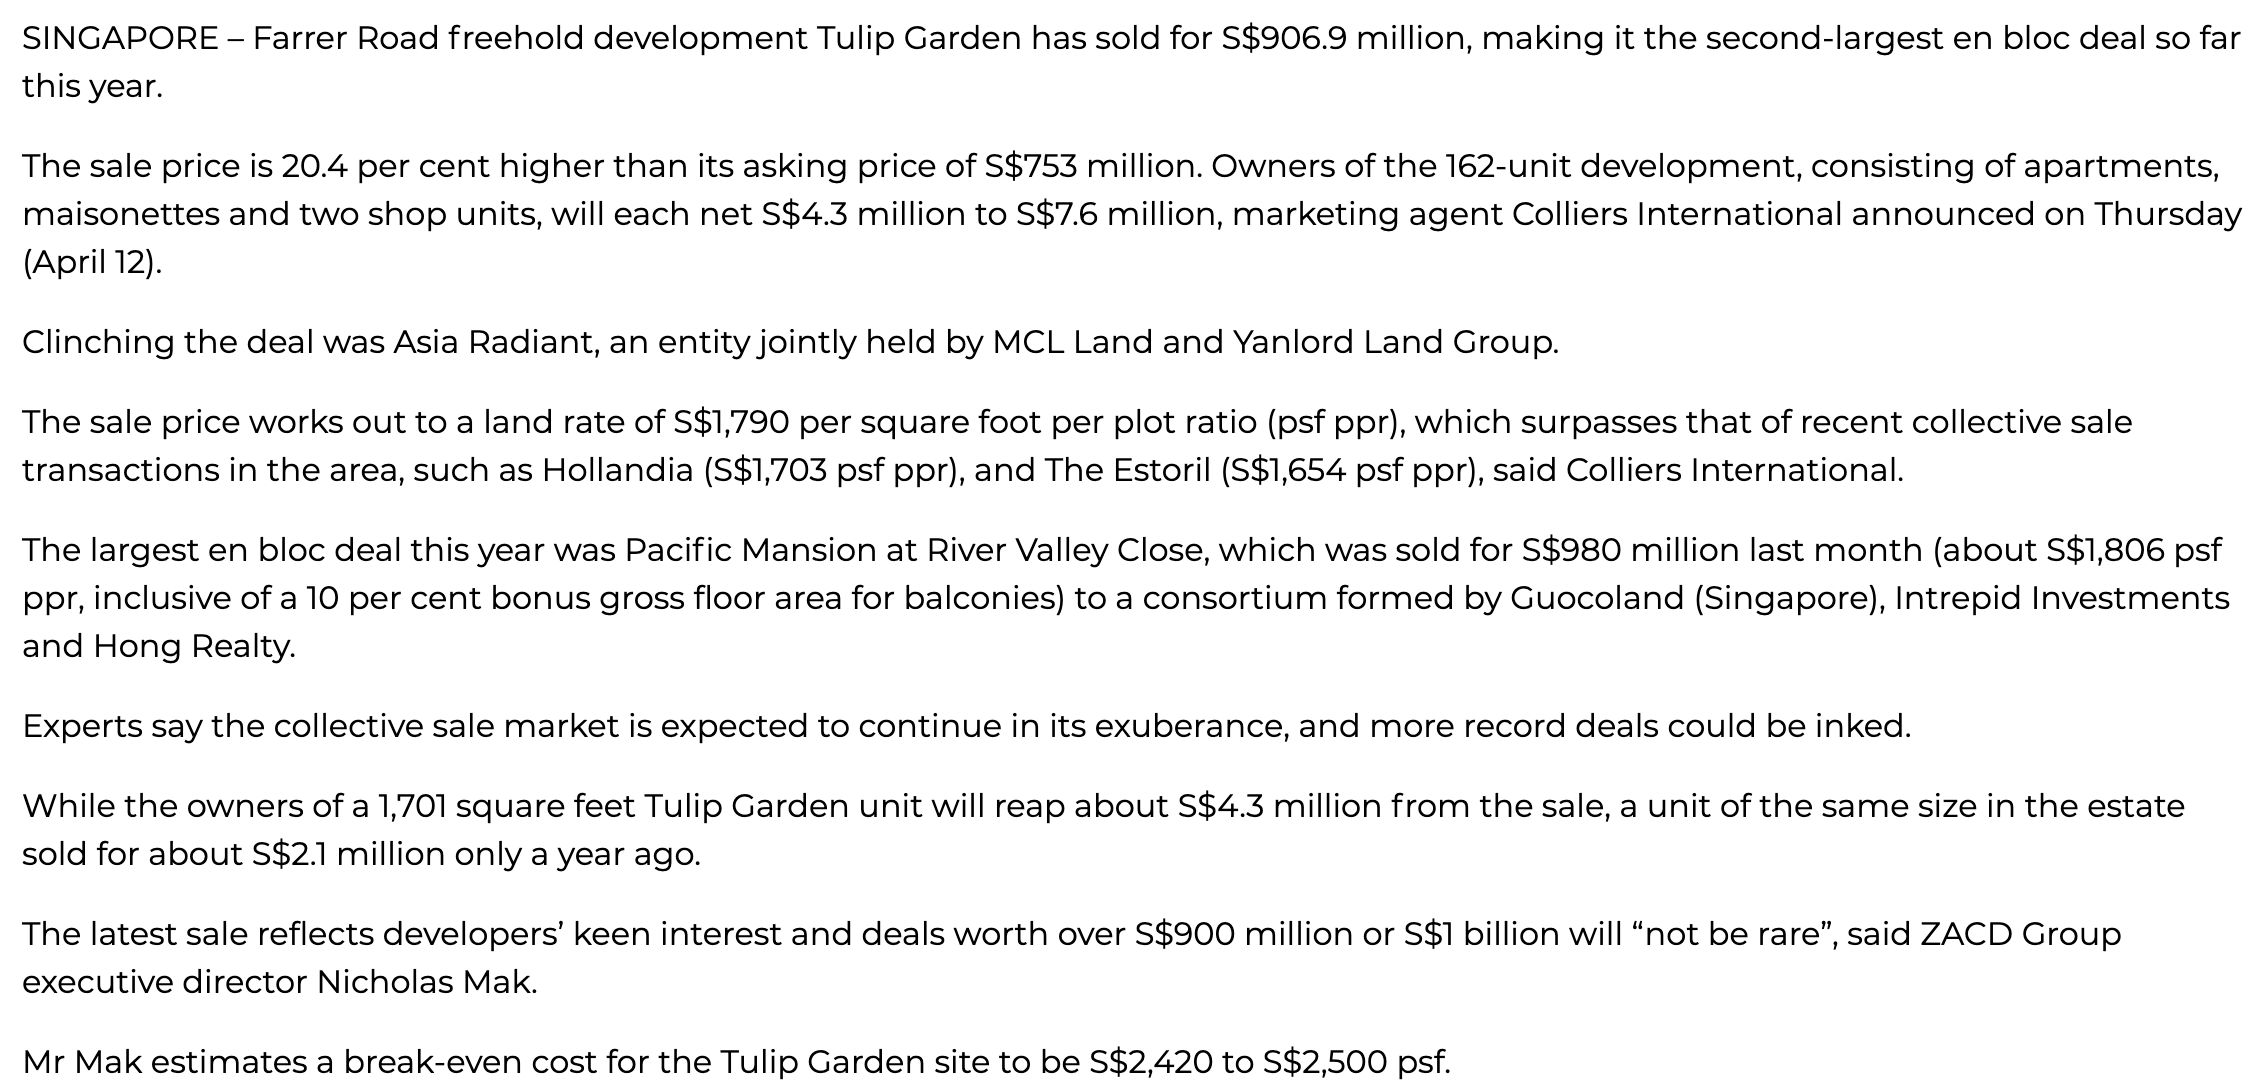 tulip-garden-sold-s9069-million-second-largest-en-bloc-deal-year-page-1